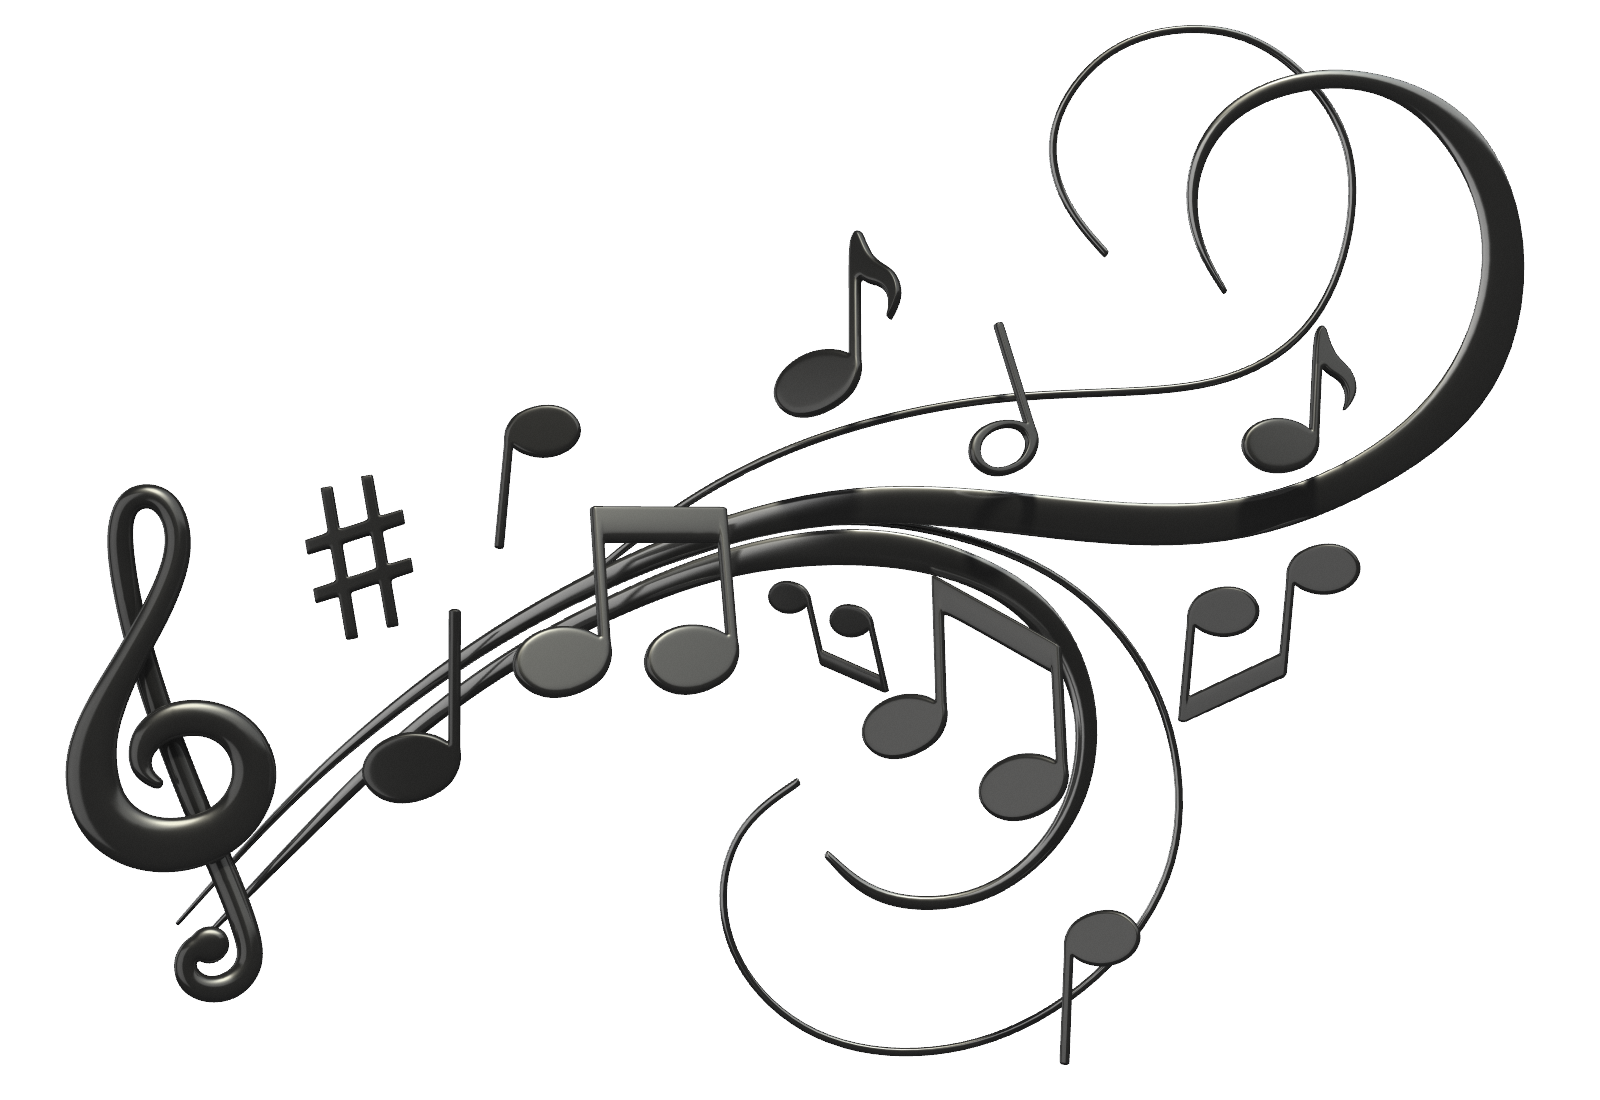 Music notes  black and white jazz music notes clipart